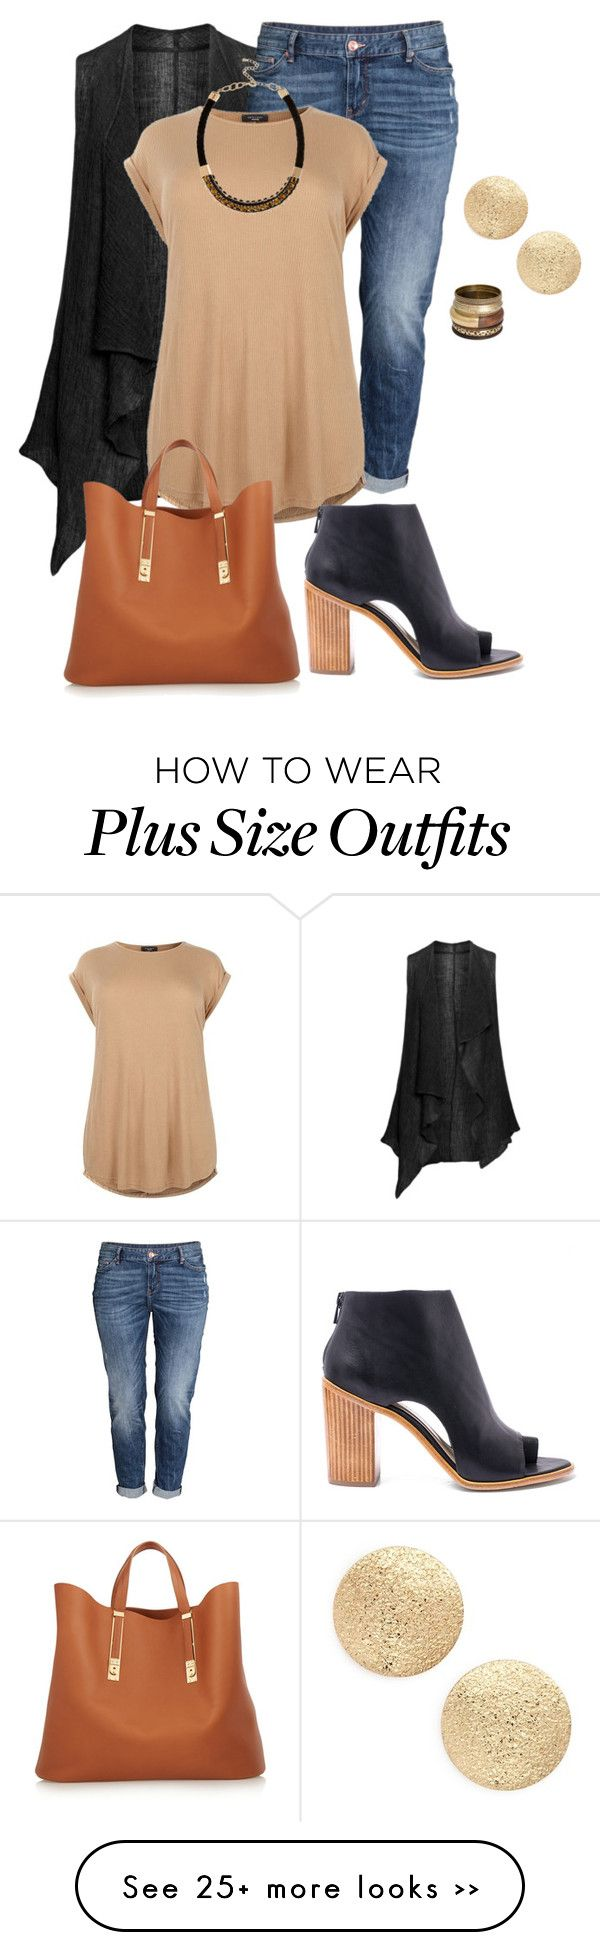 """""""plus size fall chic"""" by kristie-payne on Polyvore featuring Isolde Roth, H&M, Loeffler Randall, Nordstrom, River Island and Sophie Hulme"""